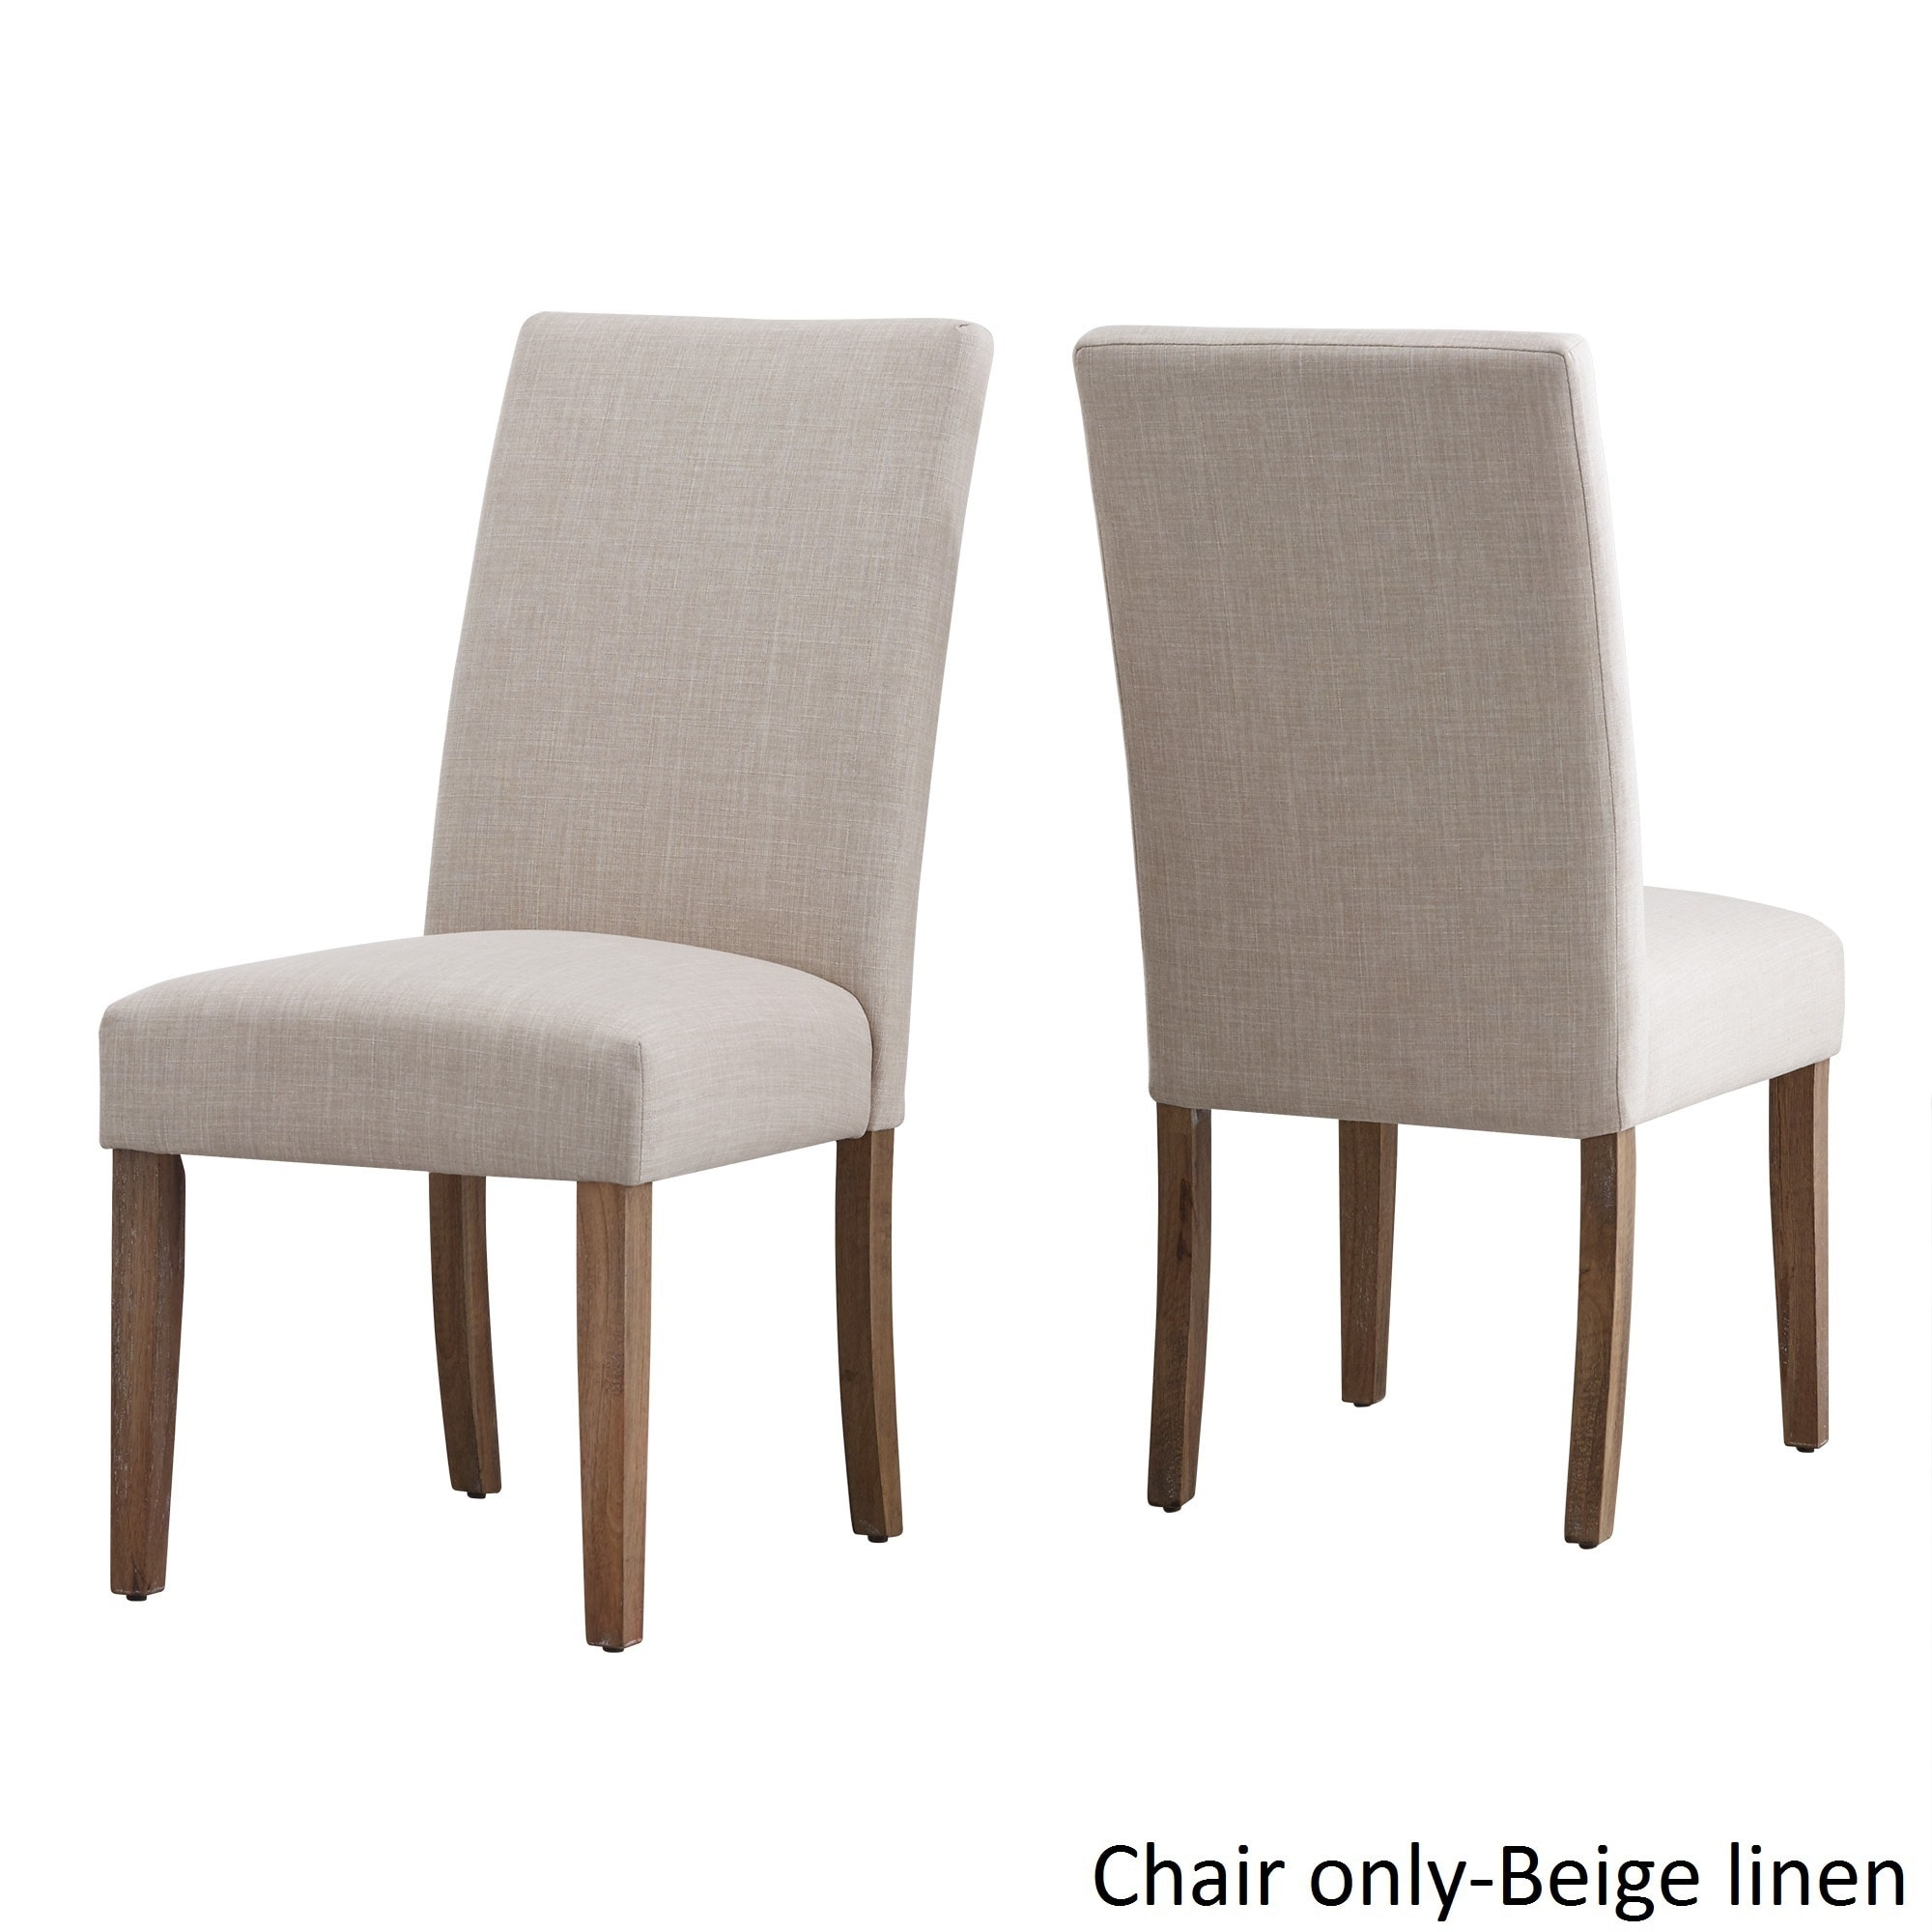 Potomac Slipcovered Parsons Dining Chairs (Set Of 2) By INSPIRE Q Artisan    Free Shipping Today   Overstock.com   19309519